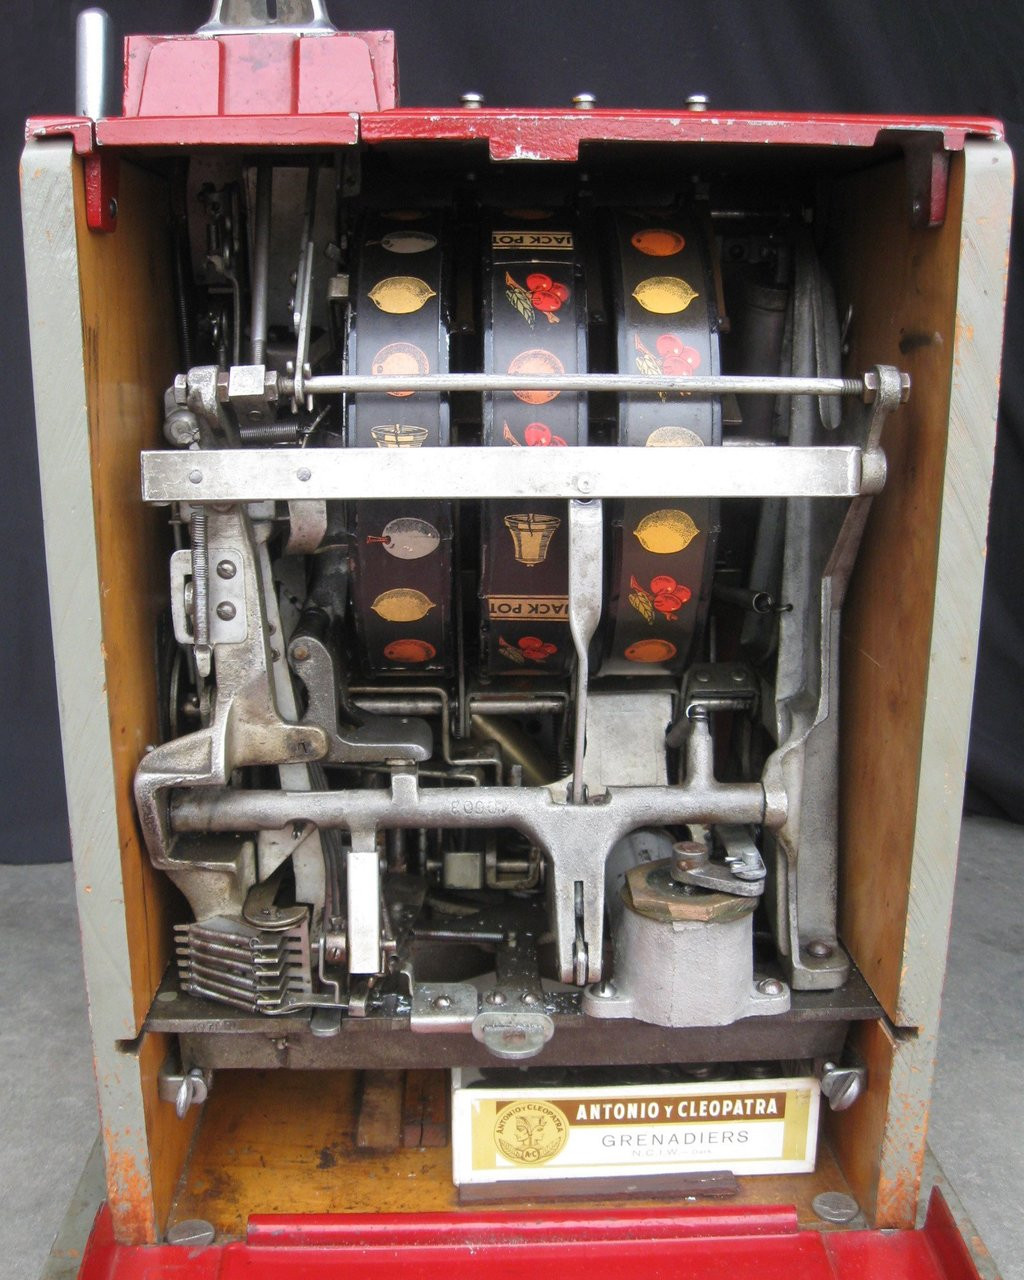 CAILLE ANTIQUE BELL SLOT MACHINE - M3851